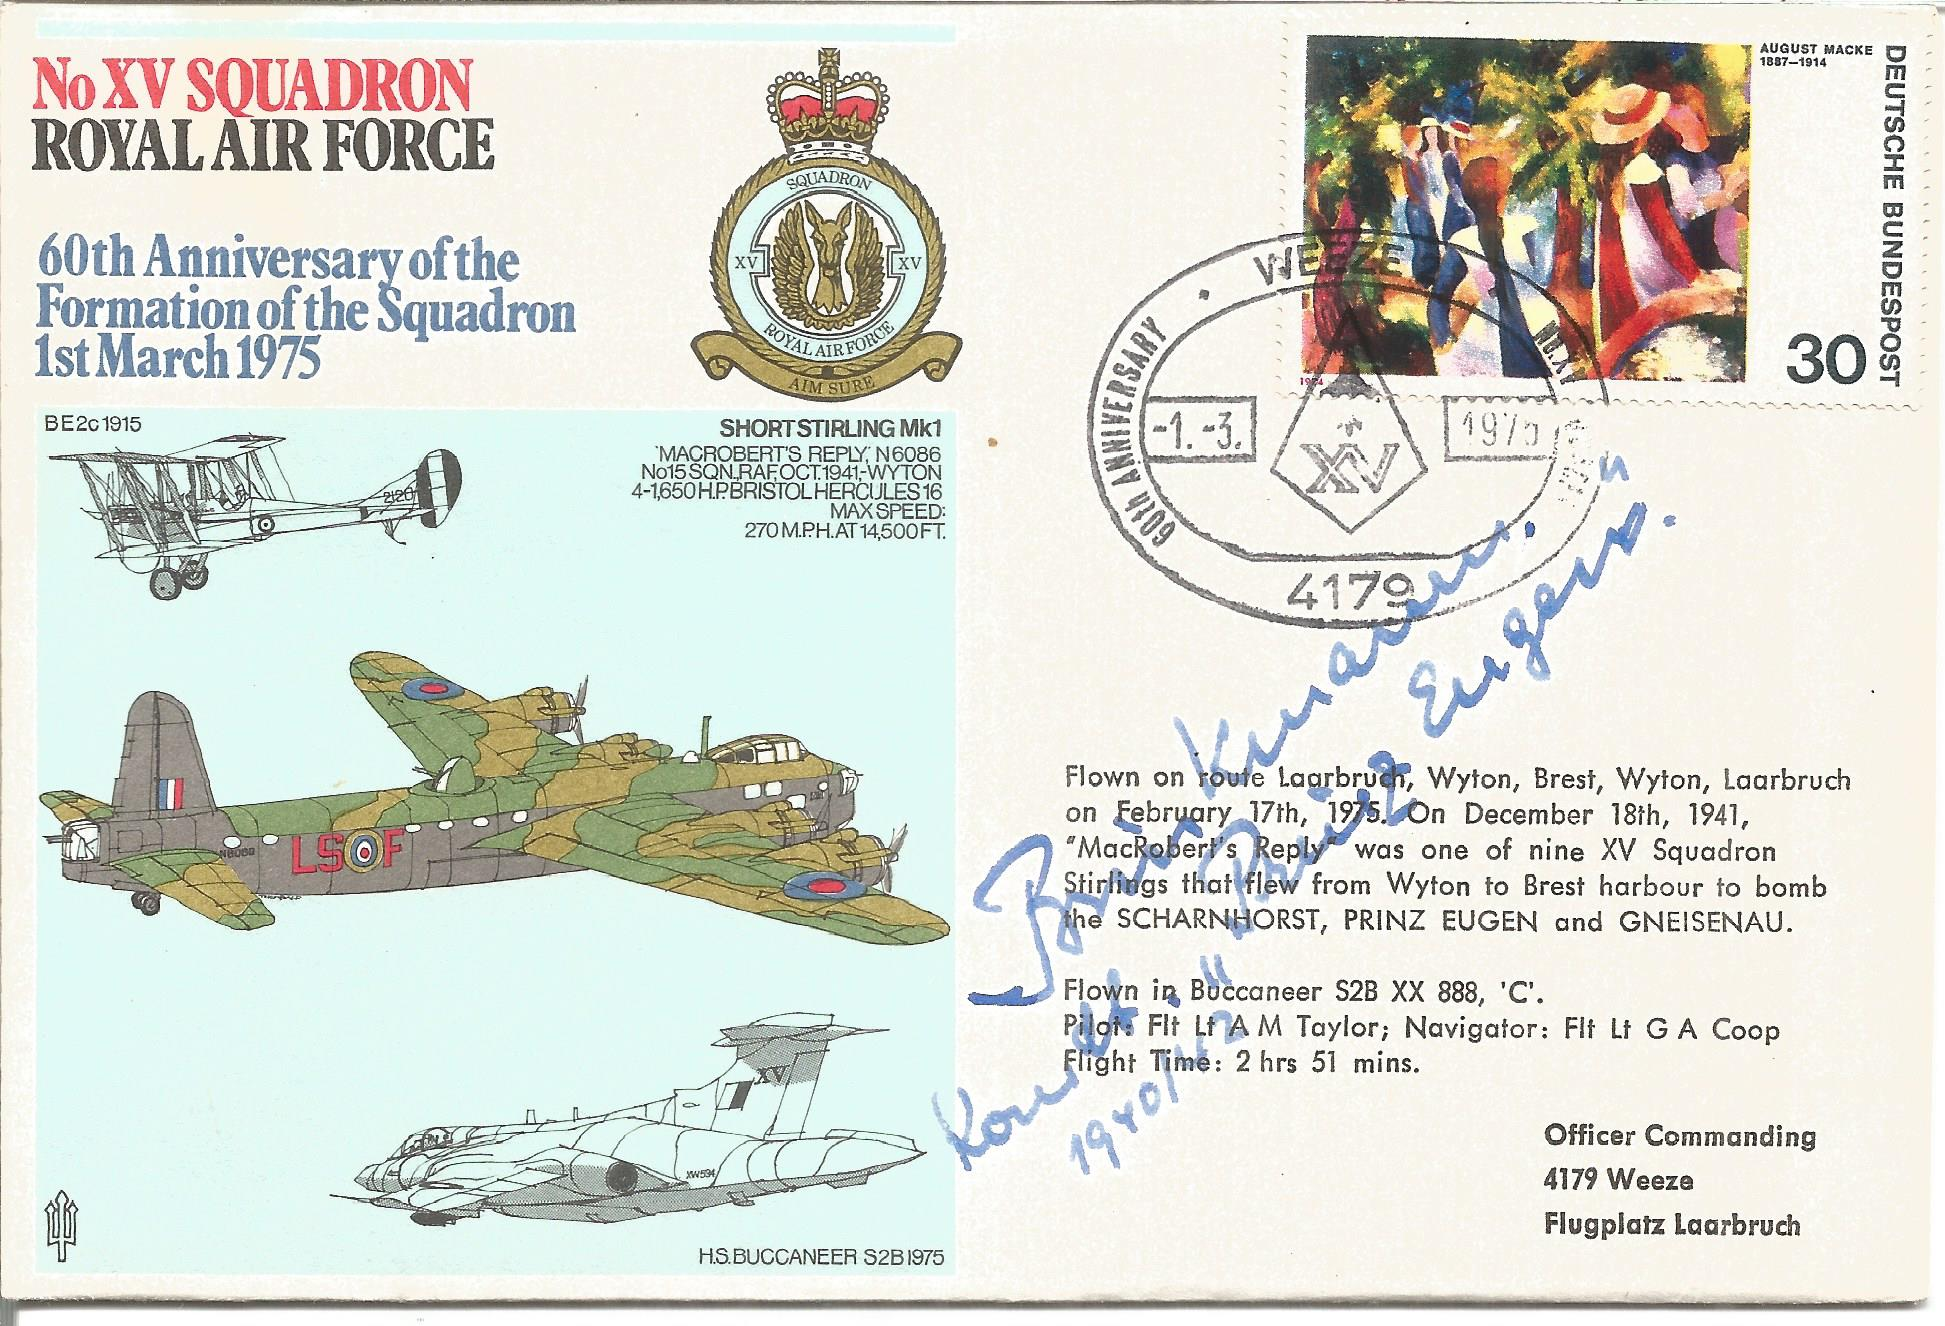 WW2 Prinz Eugen Captain Brinkmann signed No XV Squadron RAF 60th Anniversary of the Formation of the